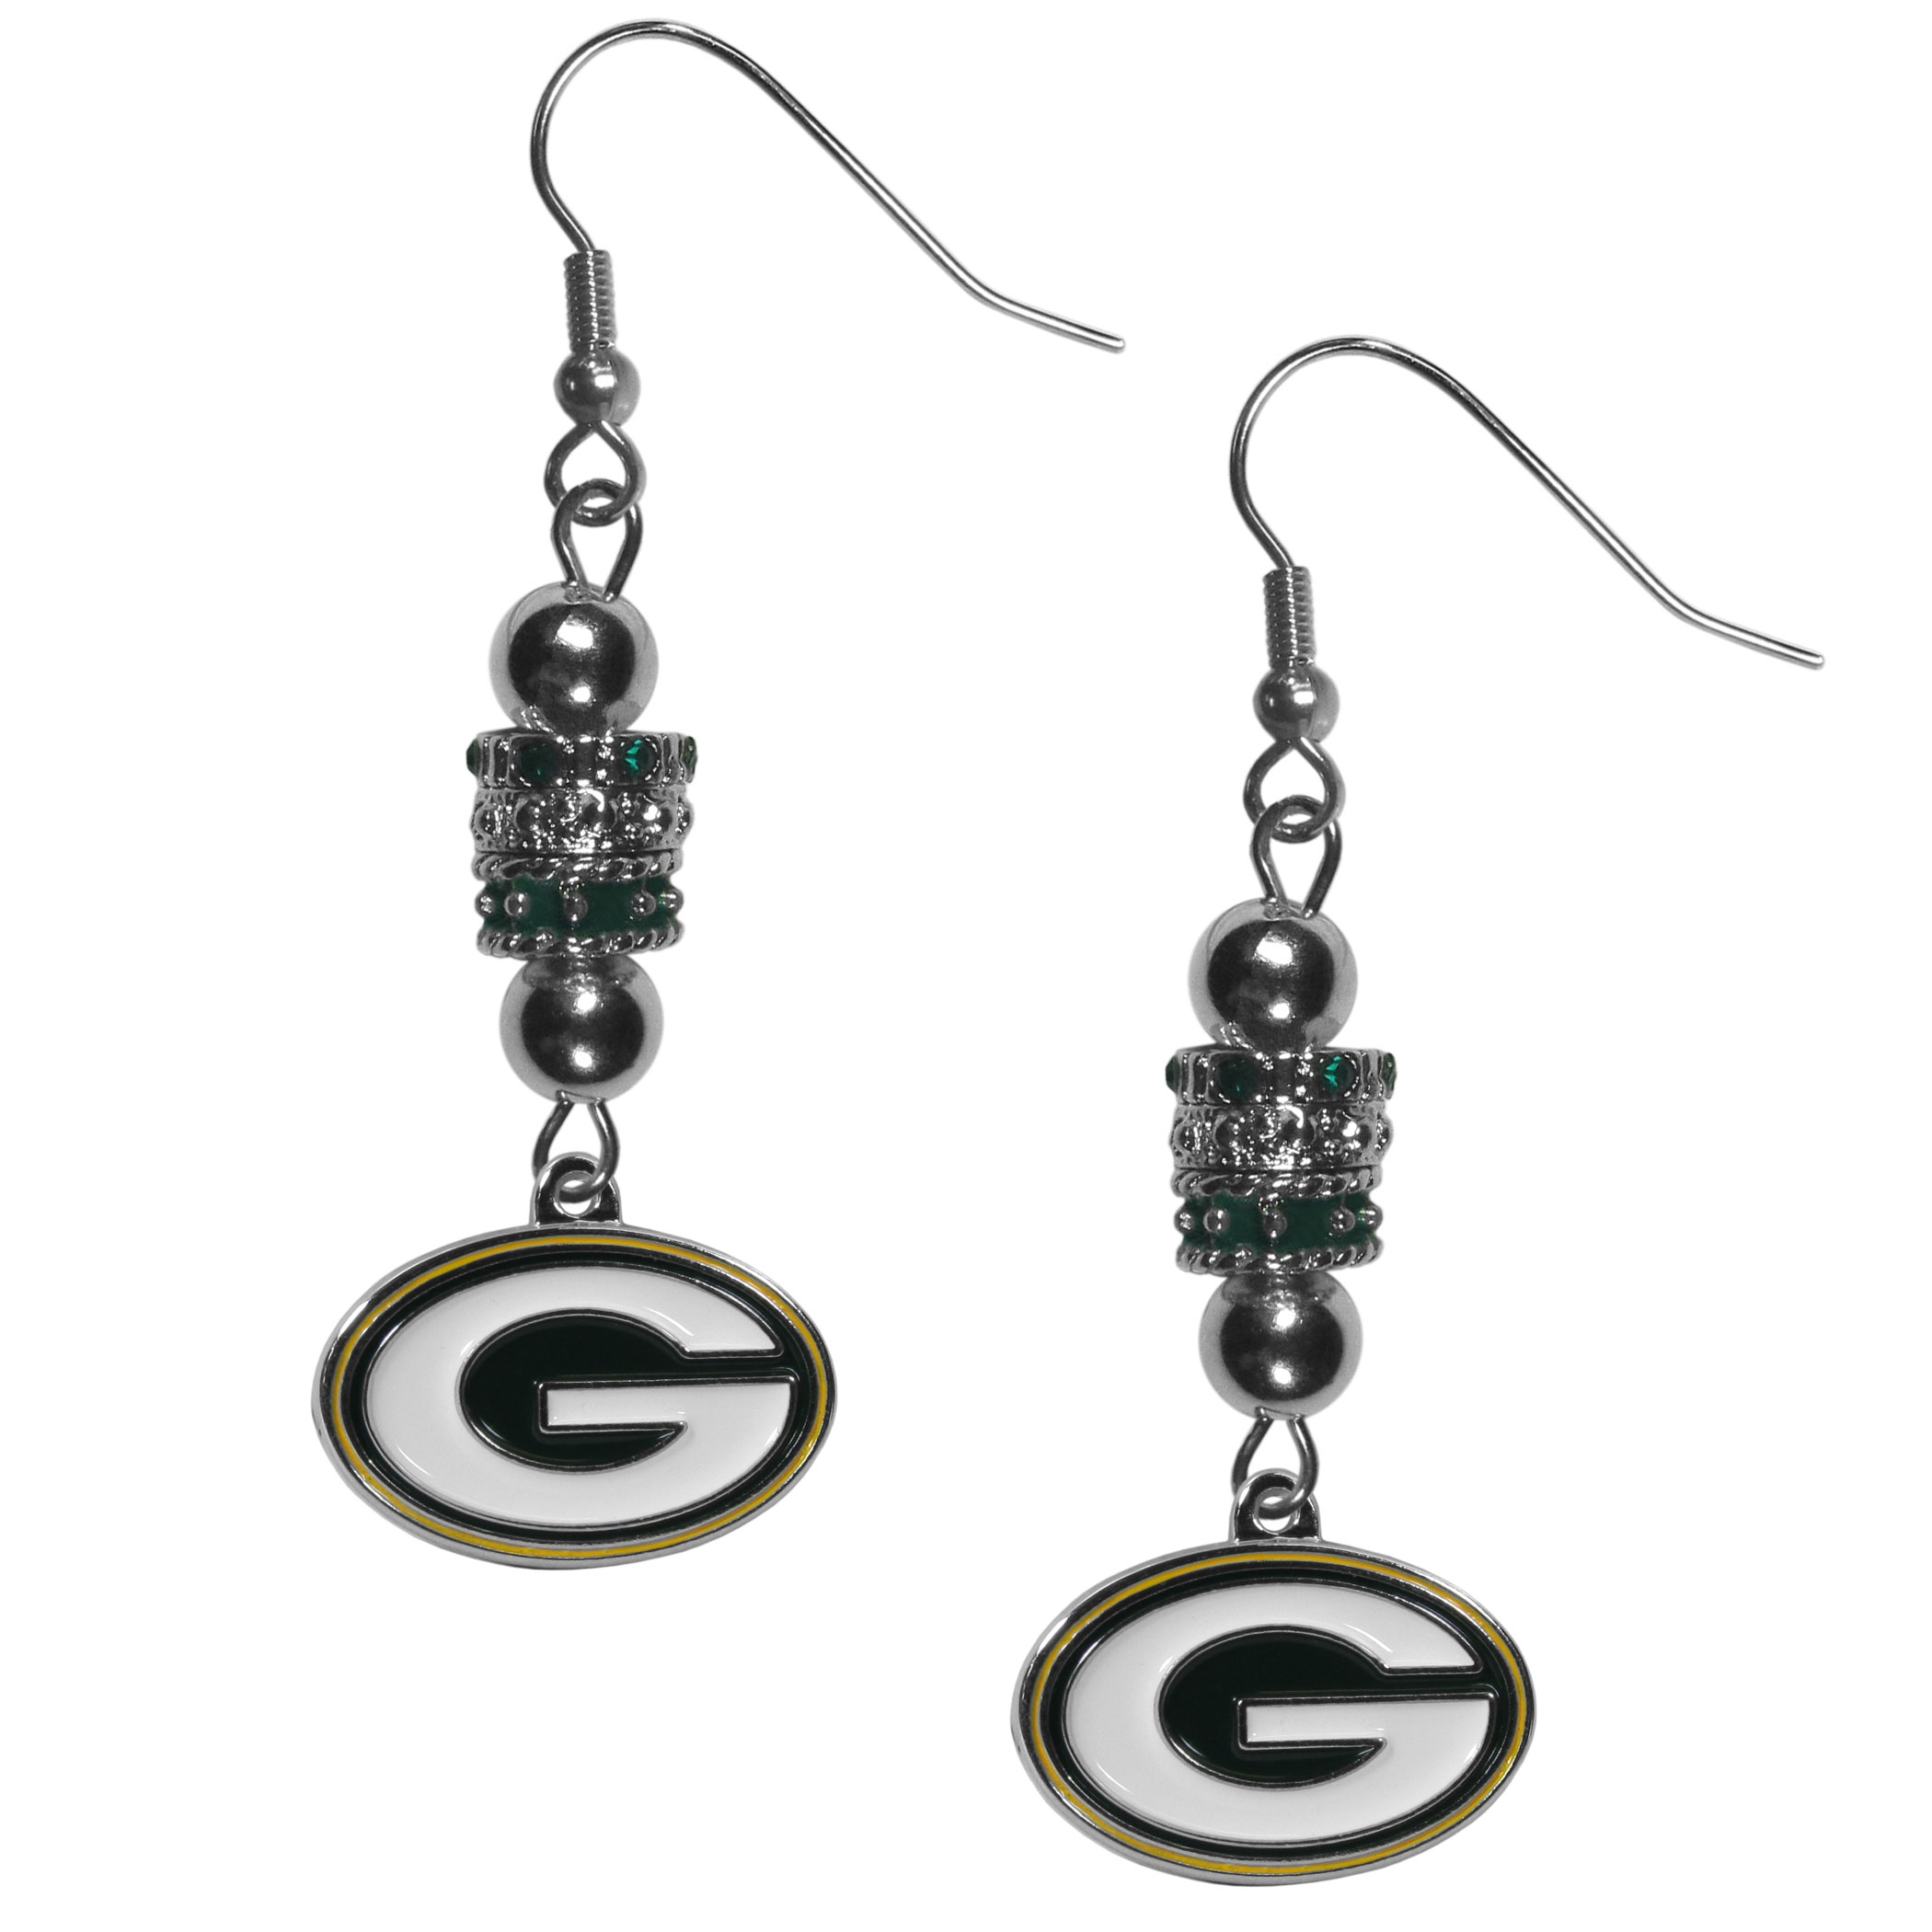 Green Bay Packers Euro Bead Earrings - These beautiful euro style earrings feature 3 euro beads and a detailed Green Bay Packers charm on hypoallergenic fishhook posts.